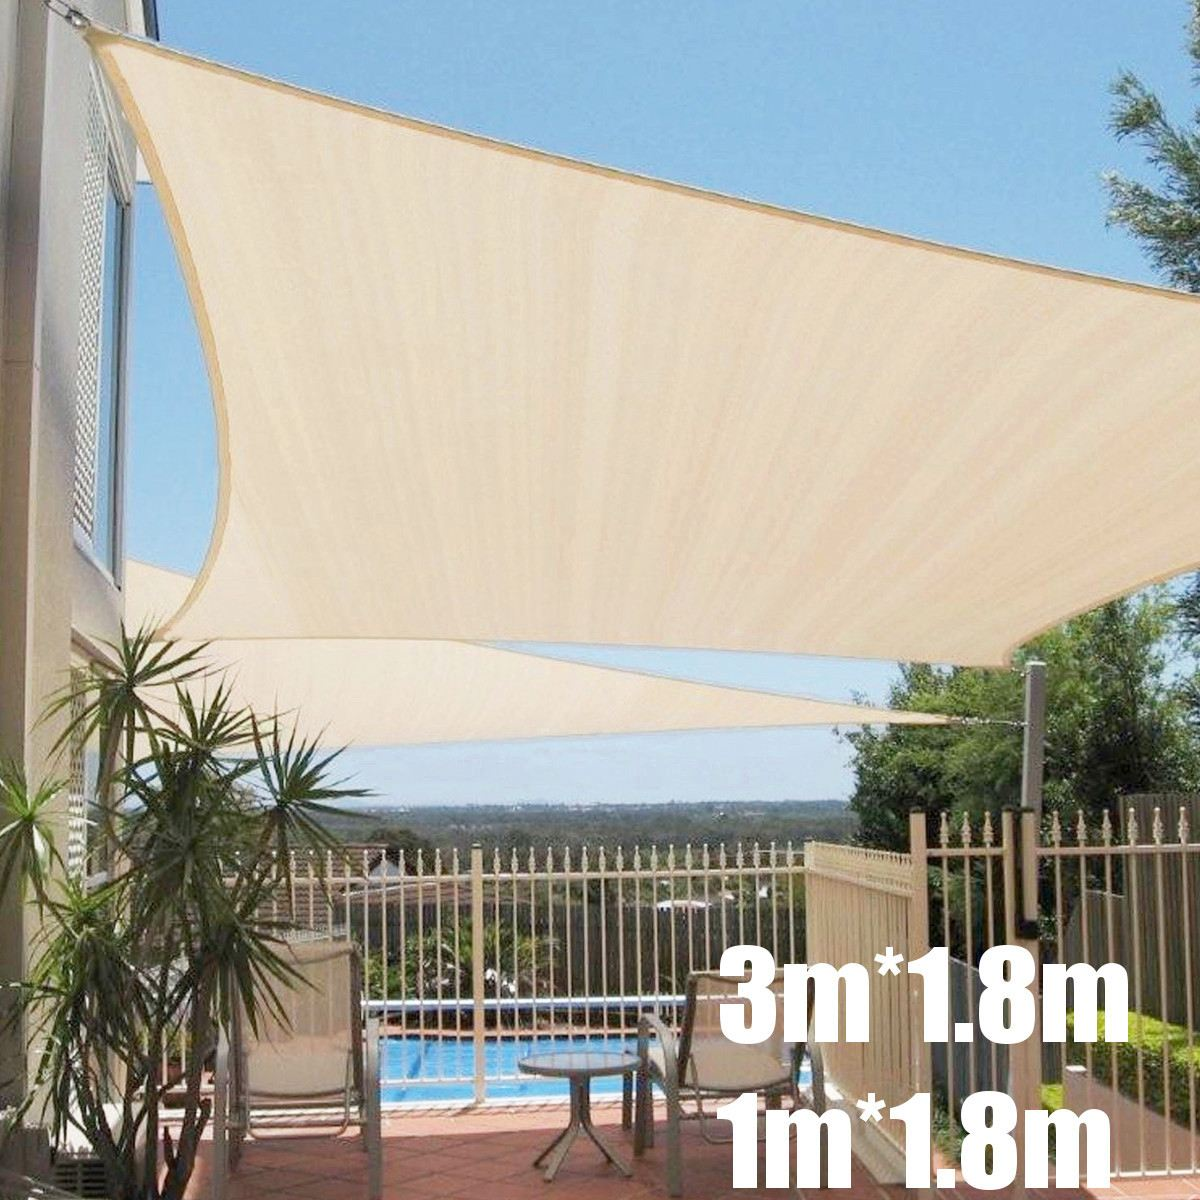 Sun Shelter Tent Beach Sunshade Net Outdoor Camping Garden UV Protect Canopy Patio Pool Shade Sail Awning Tent Portable 3*1.8m necklace